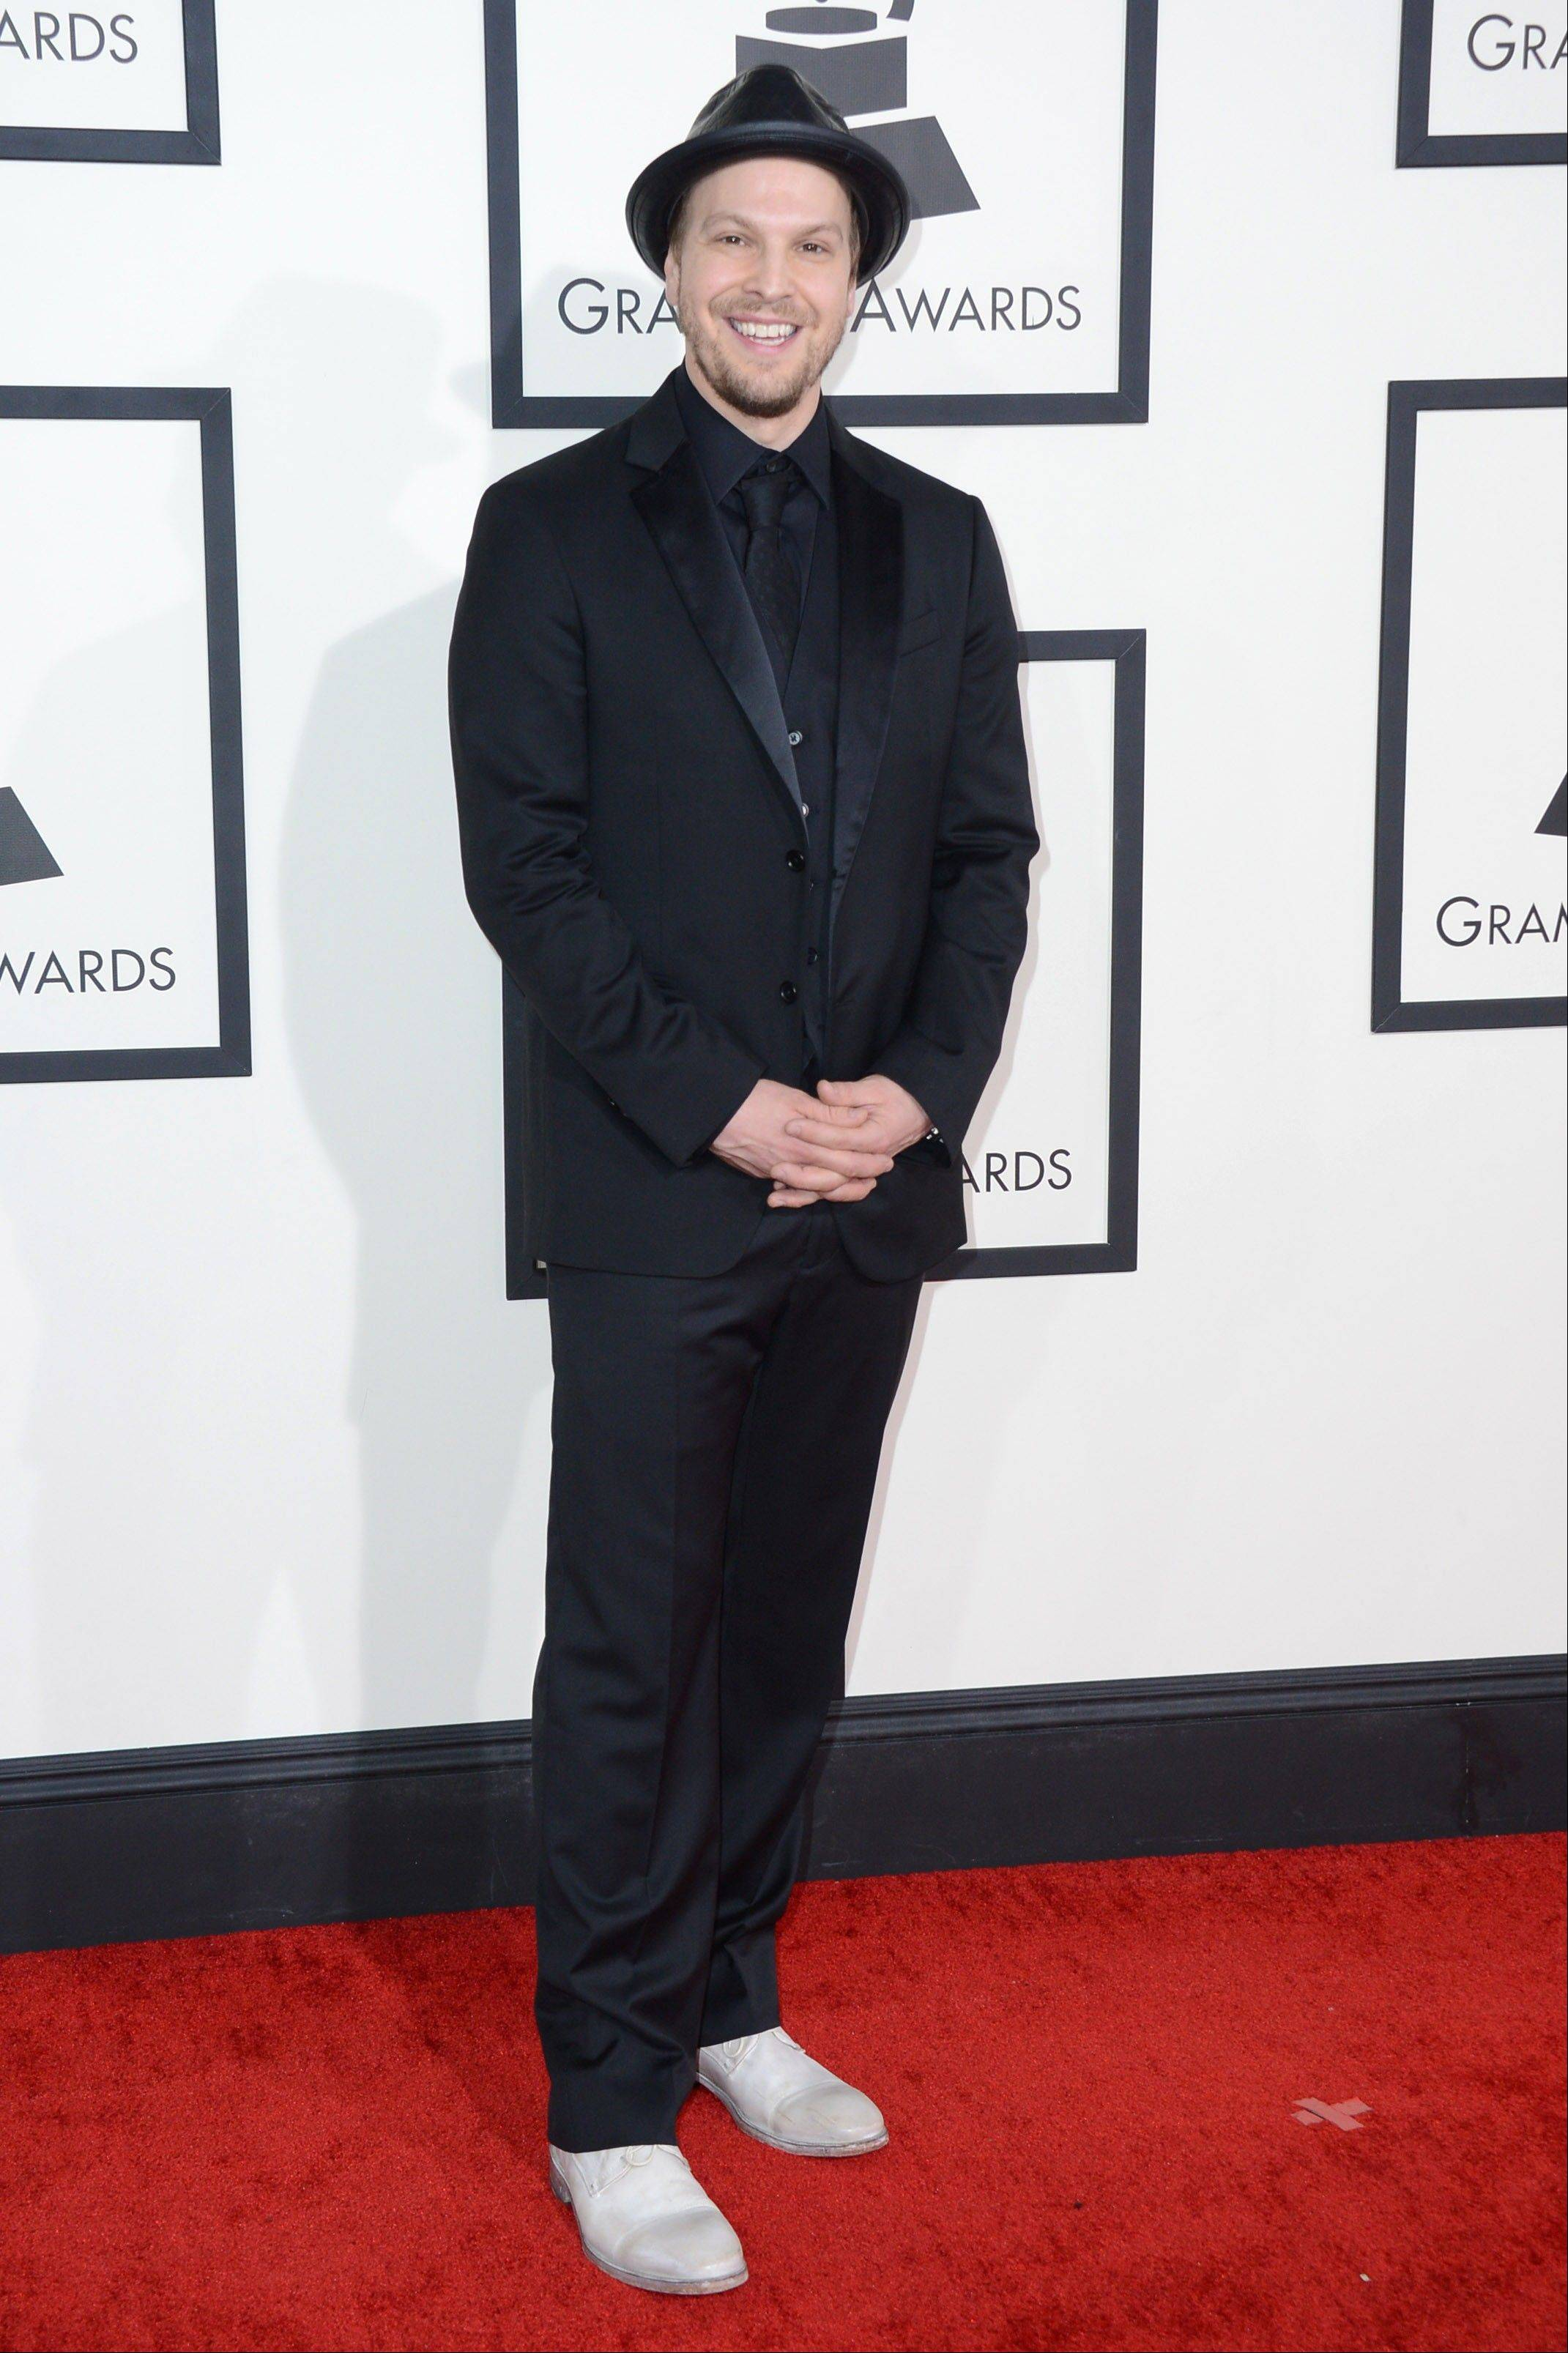 Gavin DeGraw arrives at the 56th annual Grammy Awards.